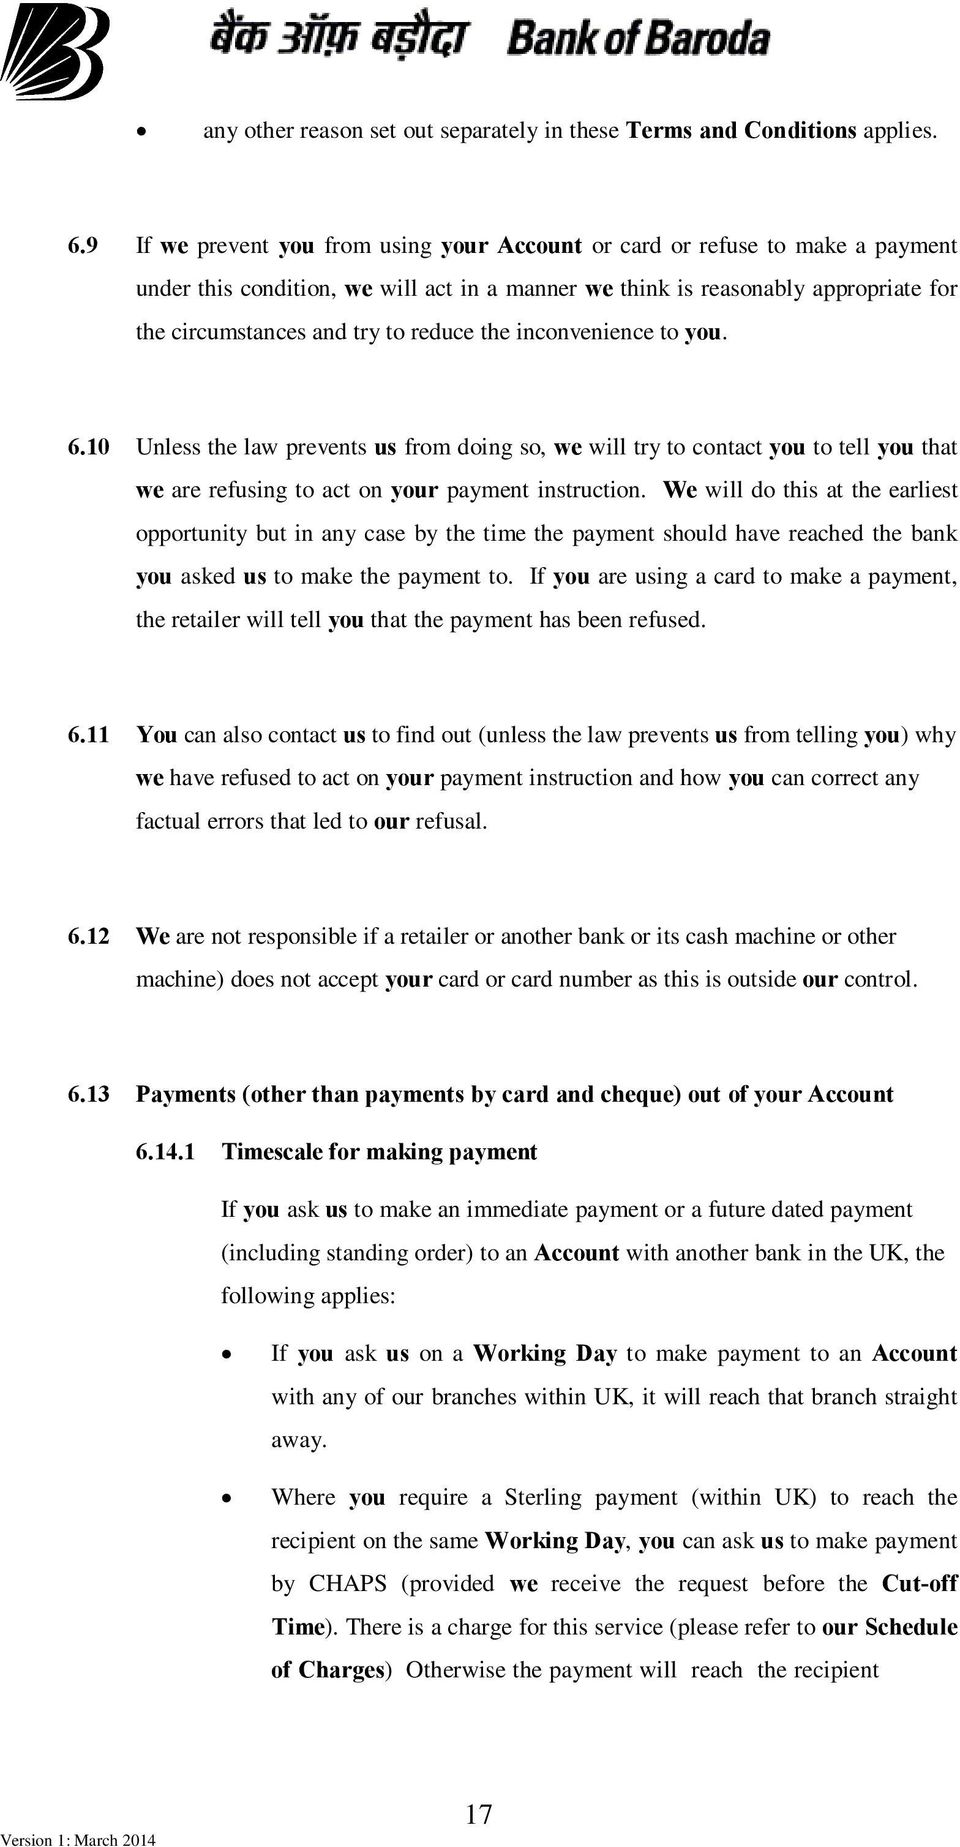 reduce the inconvenience to you. 6.10 Unless the law prevents us from doing so, we will try to contact you to tell you that we are refusing to act on your payment instruction.